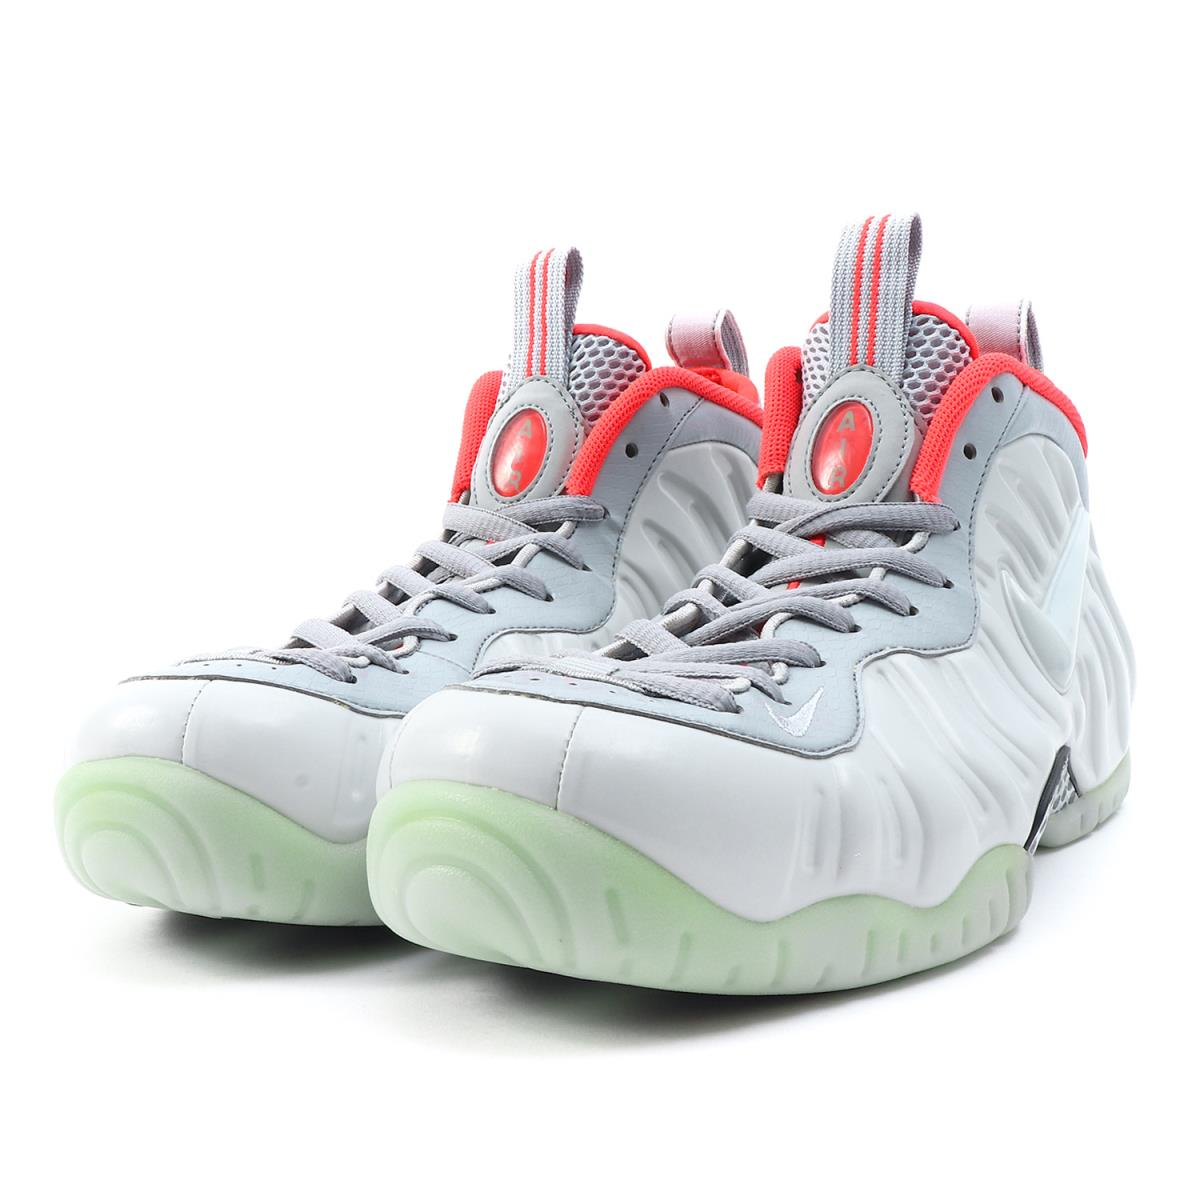 423f4810a4c2c BEEGLE by Boo-Bee  NIKE (Nike) AIR FOAMPOSITE PRO PURE PLATINUM ...